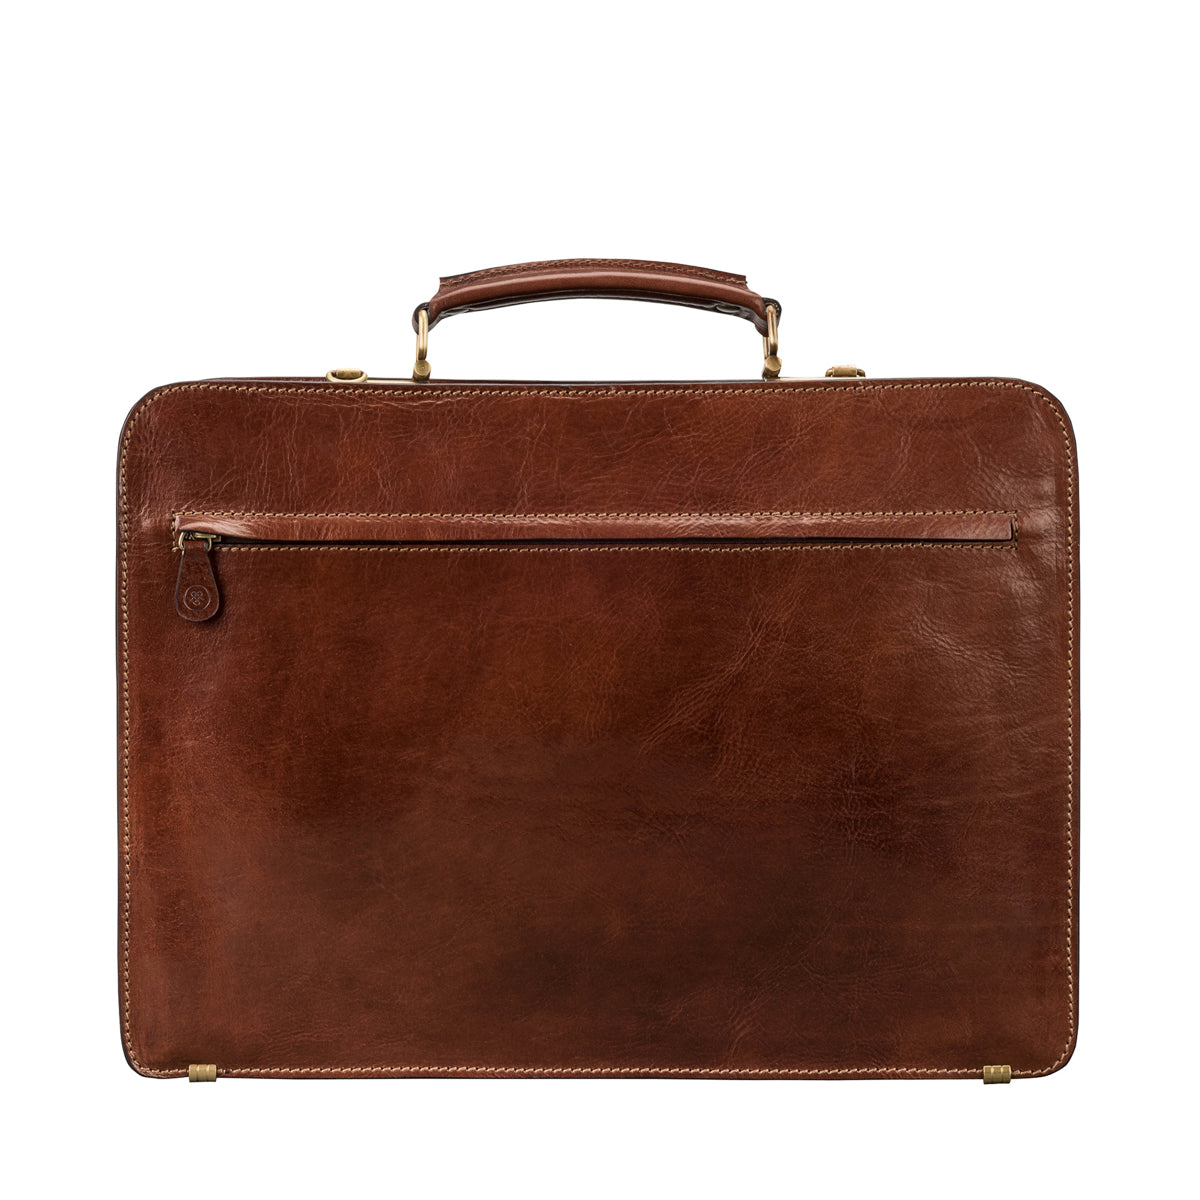 Image 4 of the 'Alanzo' Chestnut Veg-Tanned Leather Briefcase